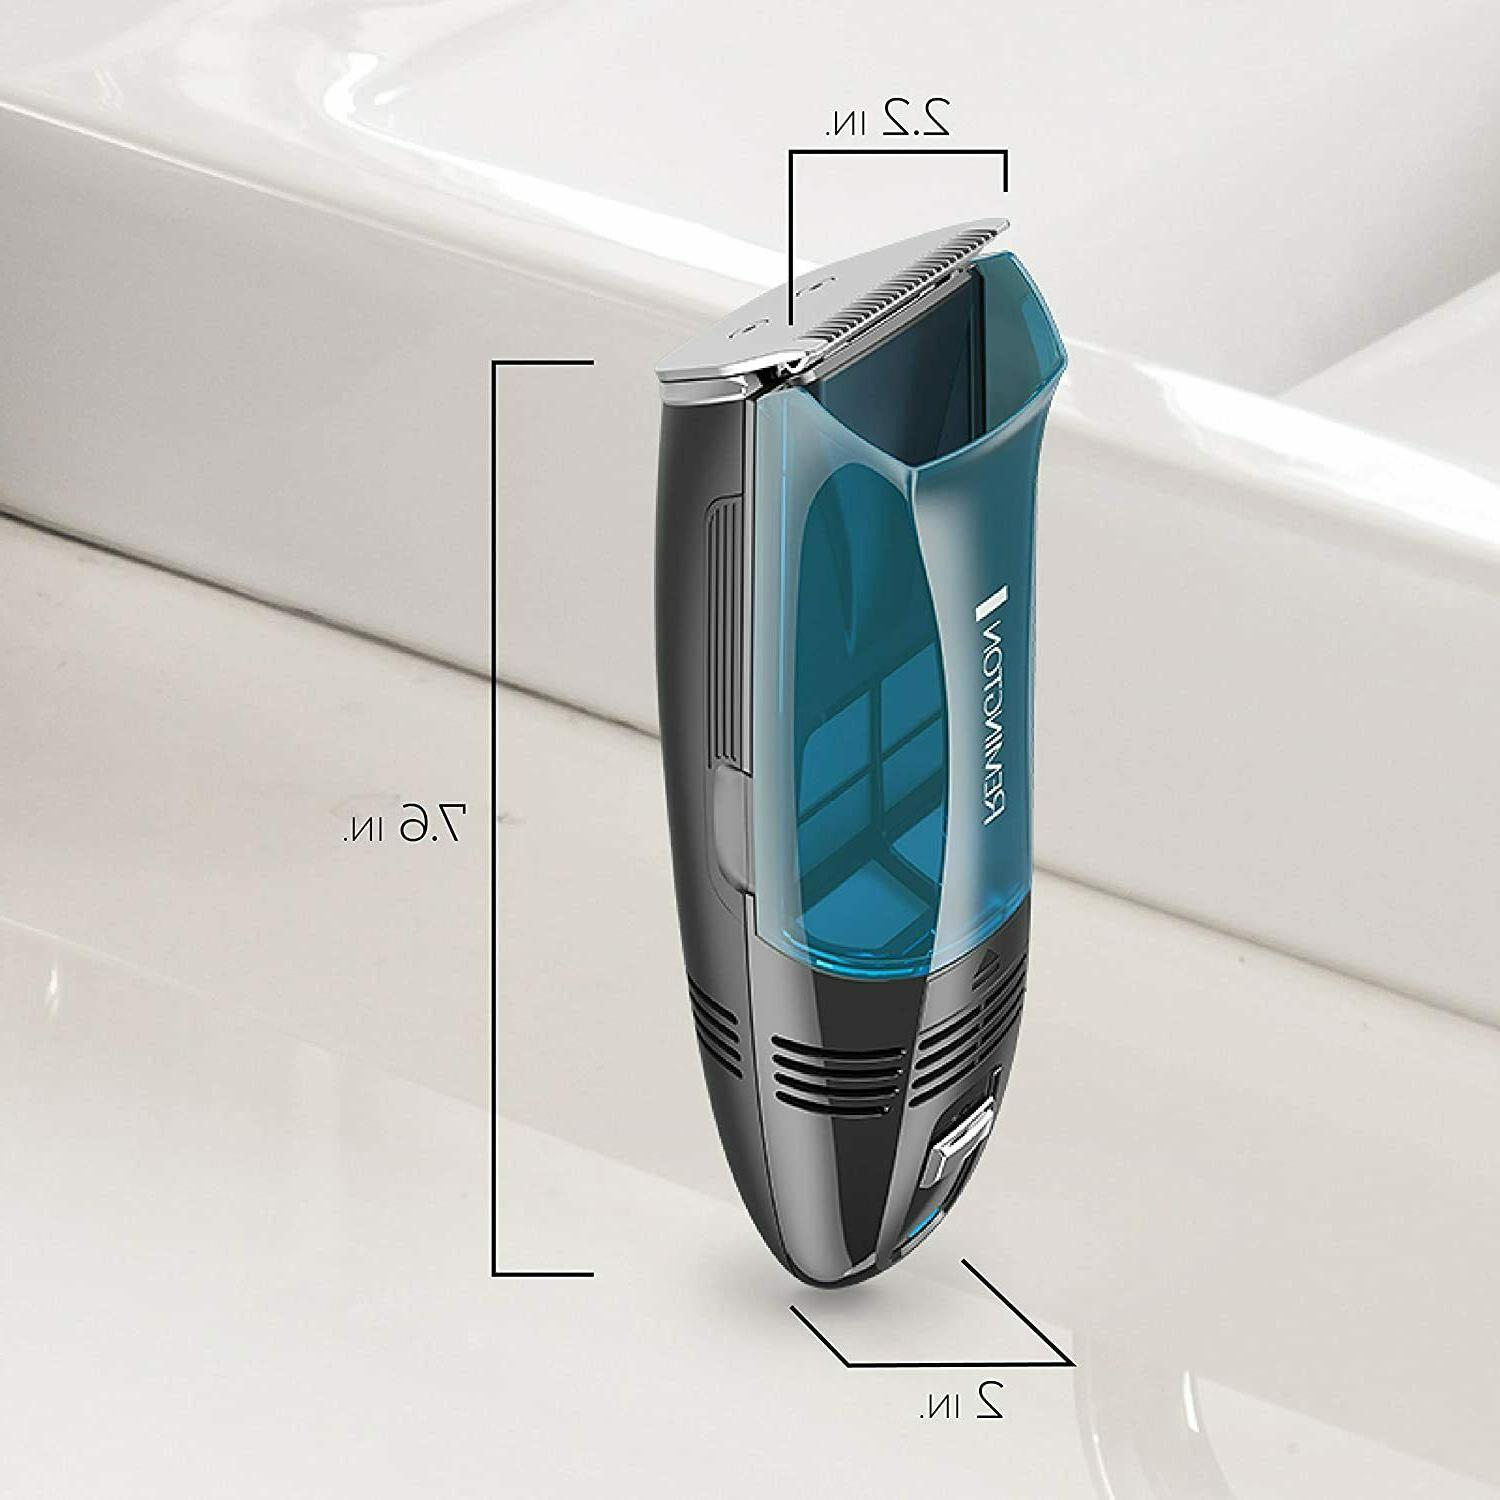 Remington Haircut Trimmer